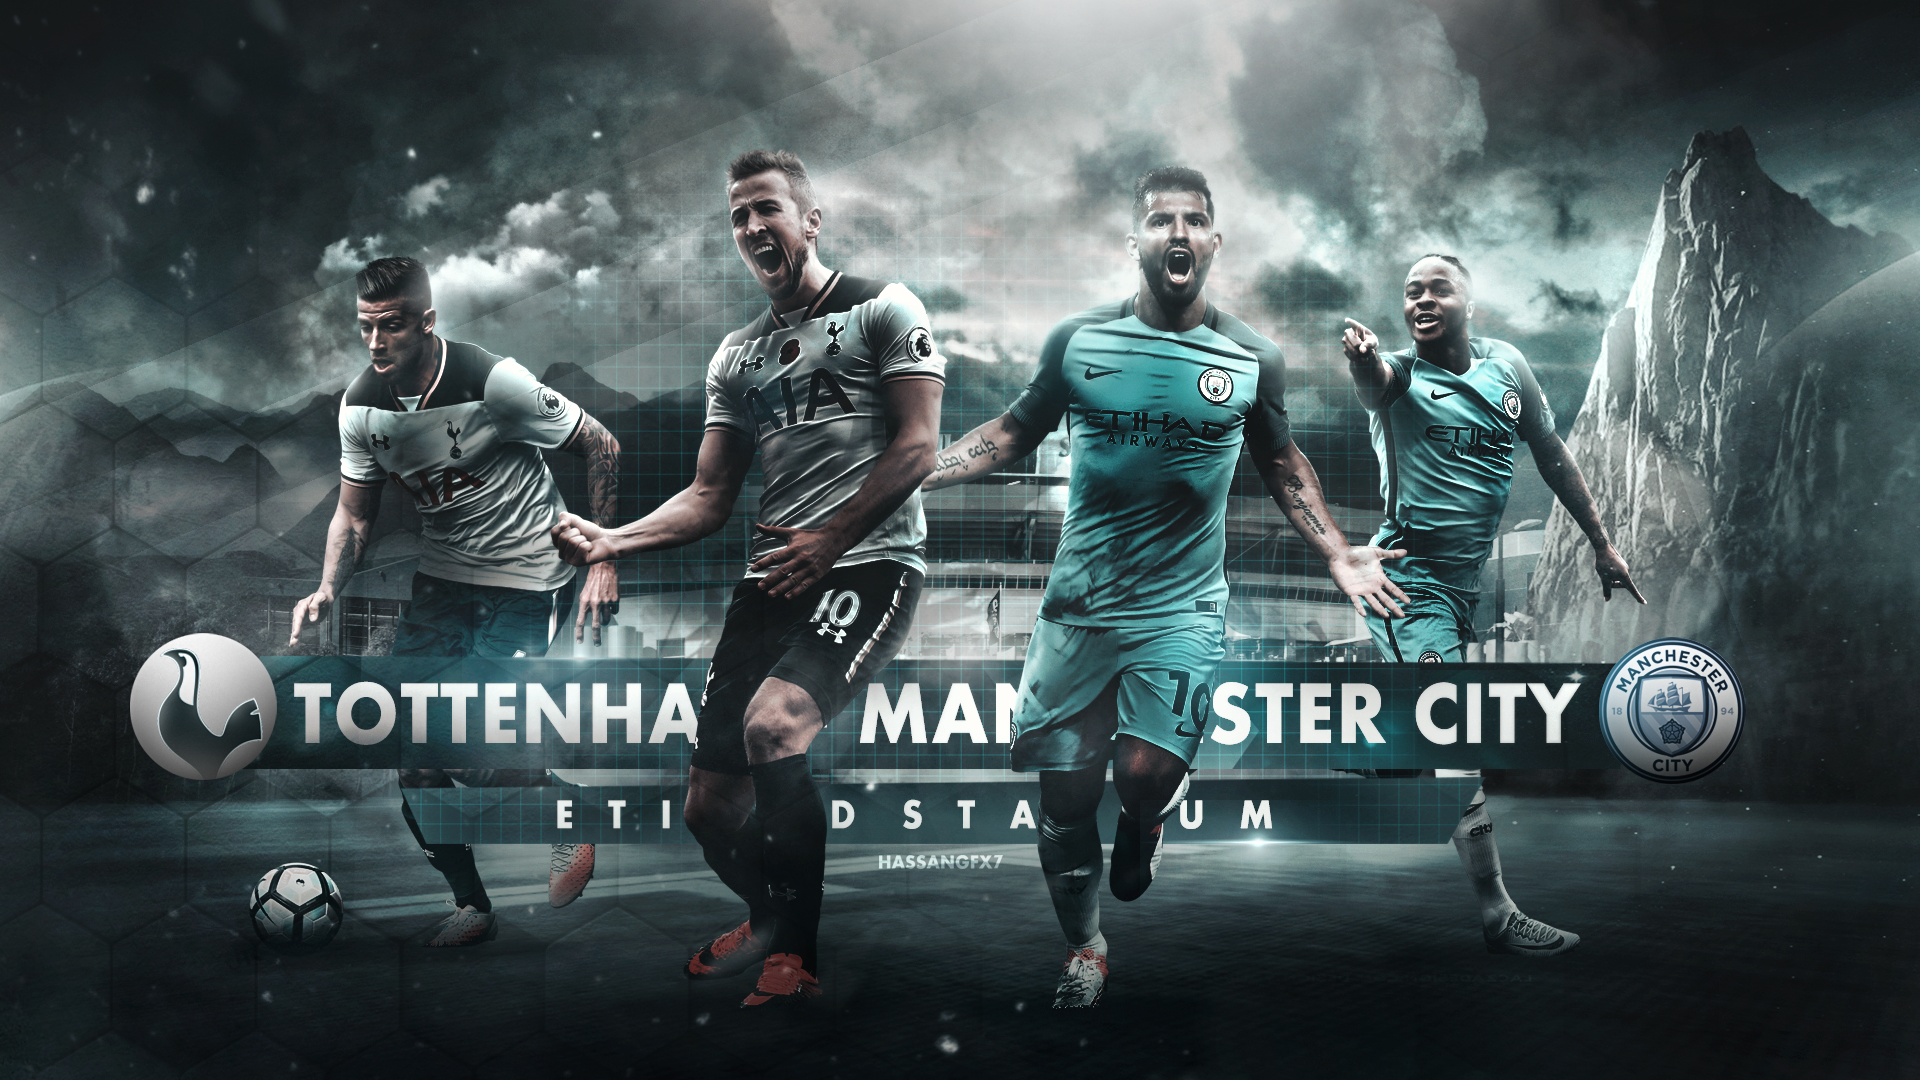 Manchester City Tottenham Matchday Wallpaper By Hassangfx7